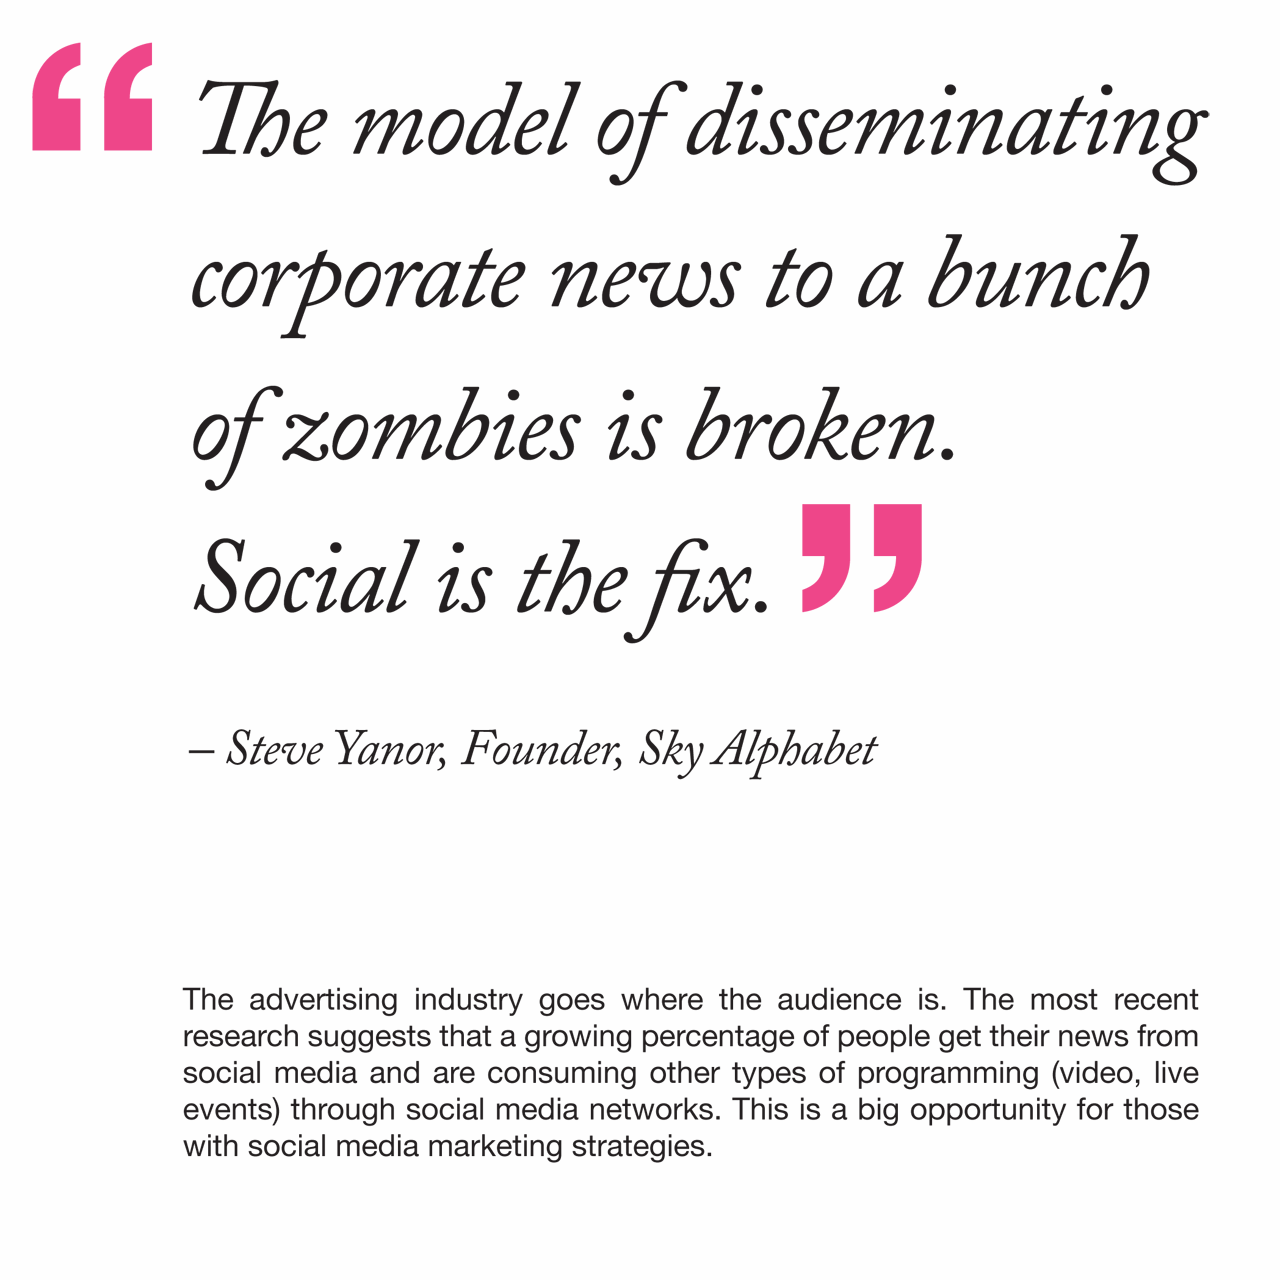 The model of disseminating corporate news to a bunch of zombies is broken. Social is the fix. Quote from Steve Yanor.